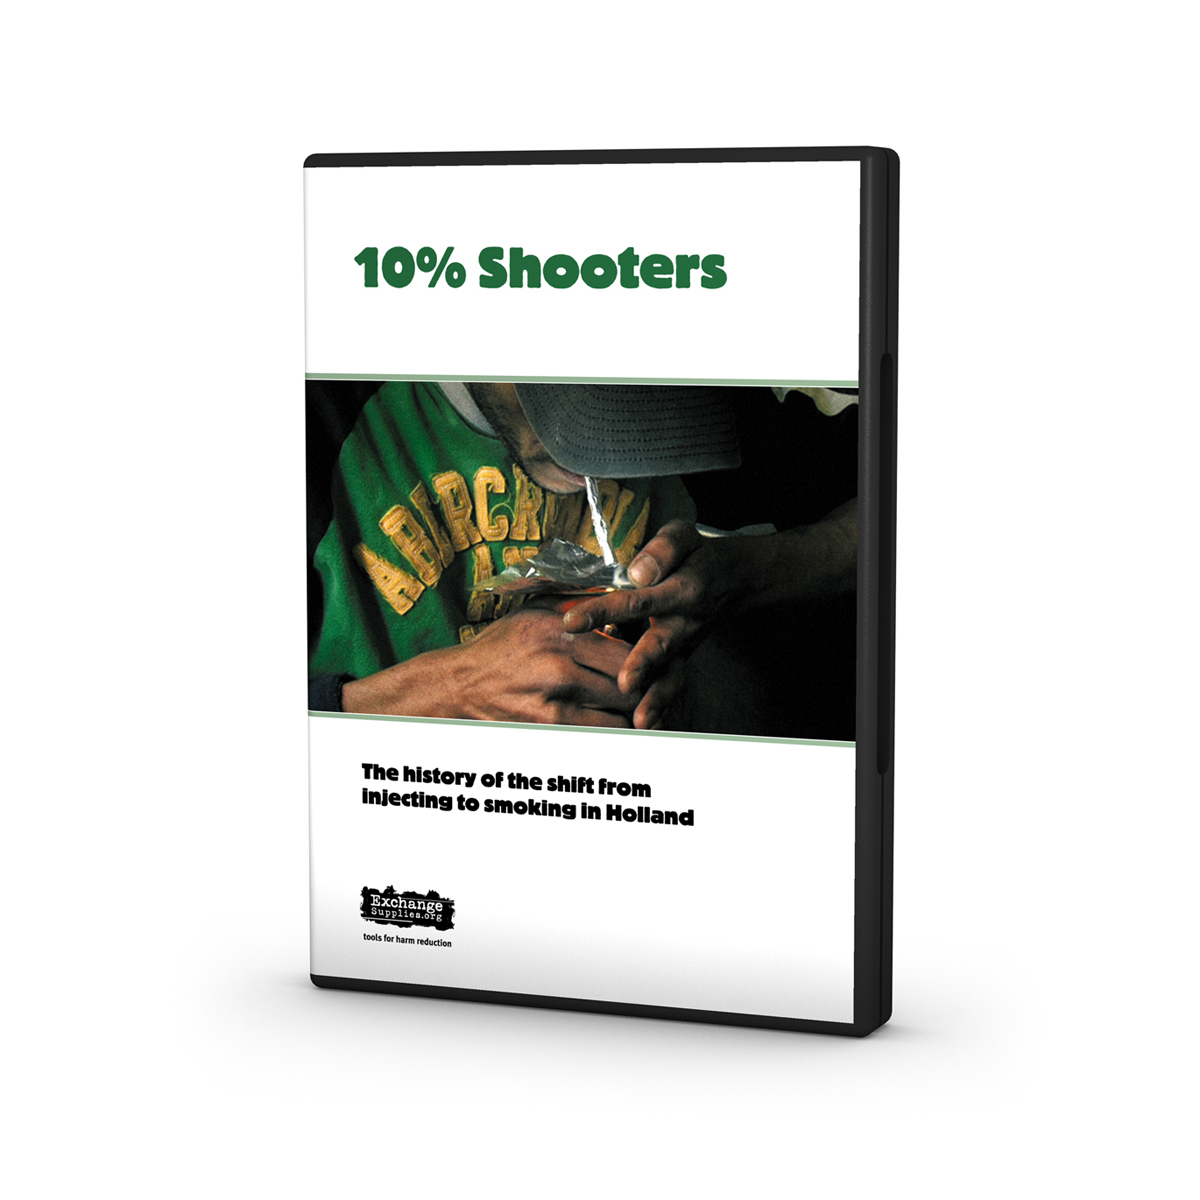 10% Shooters